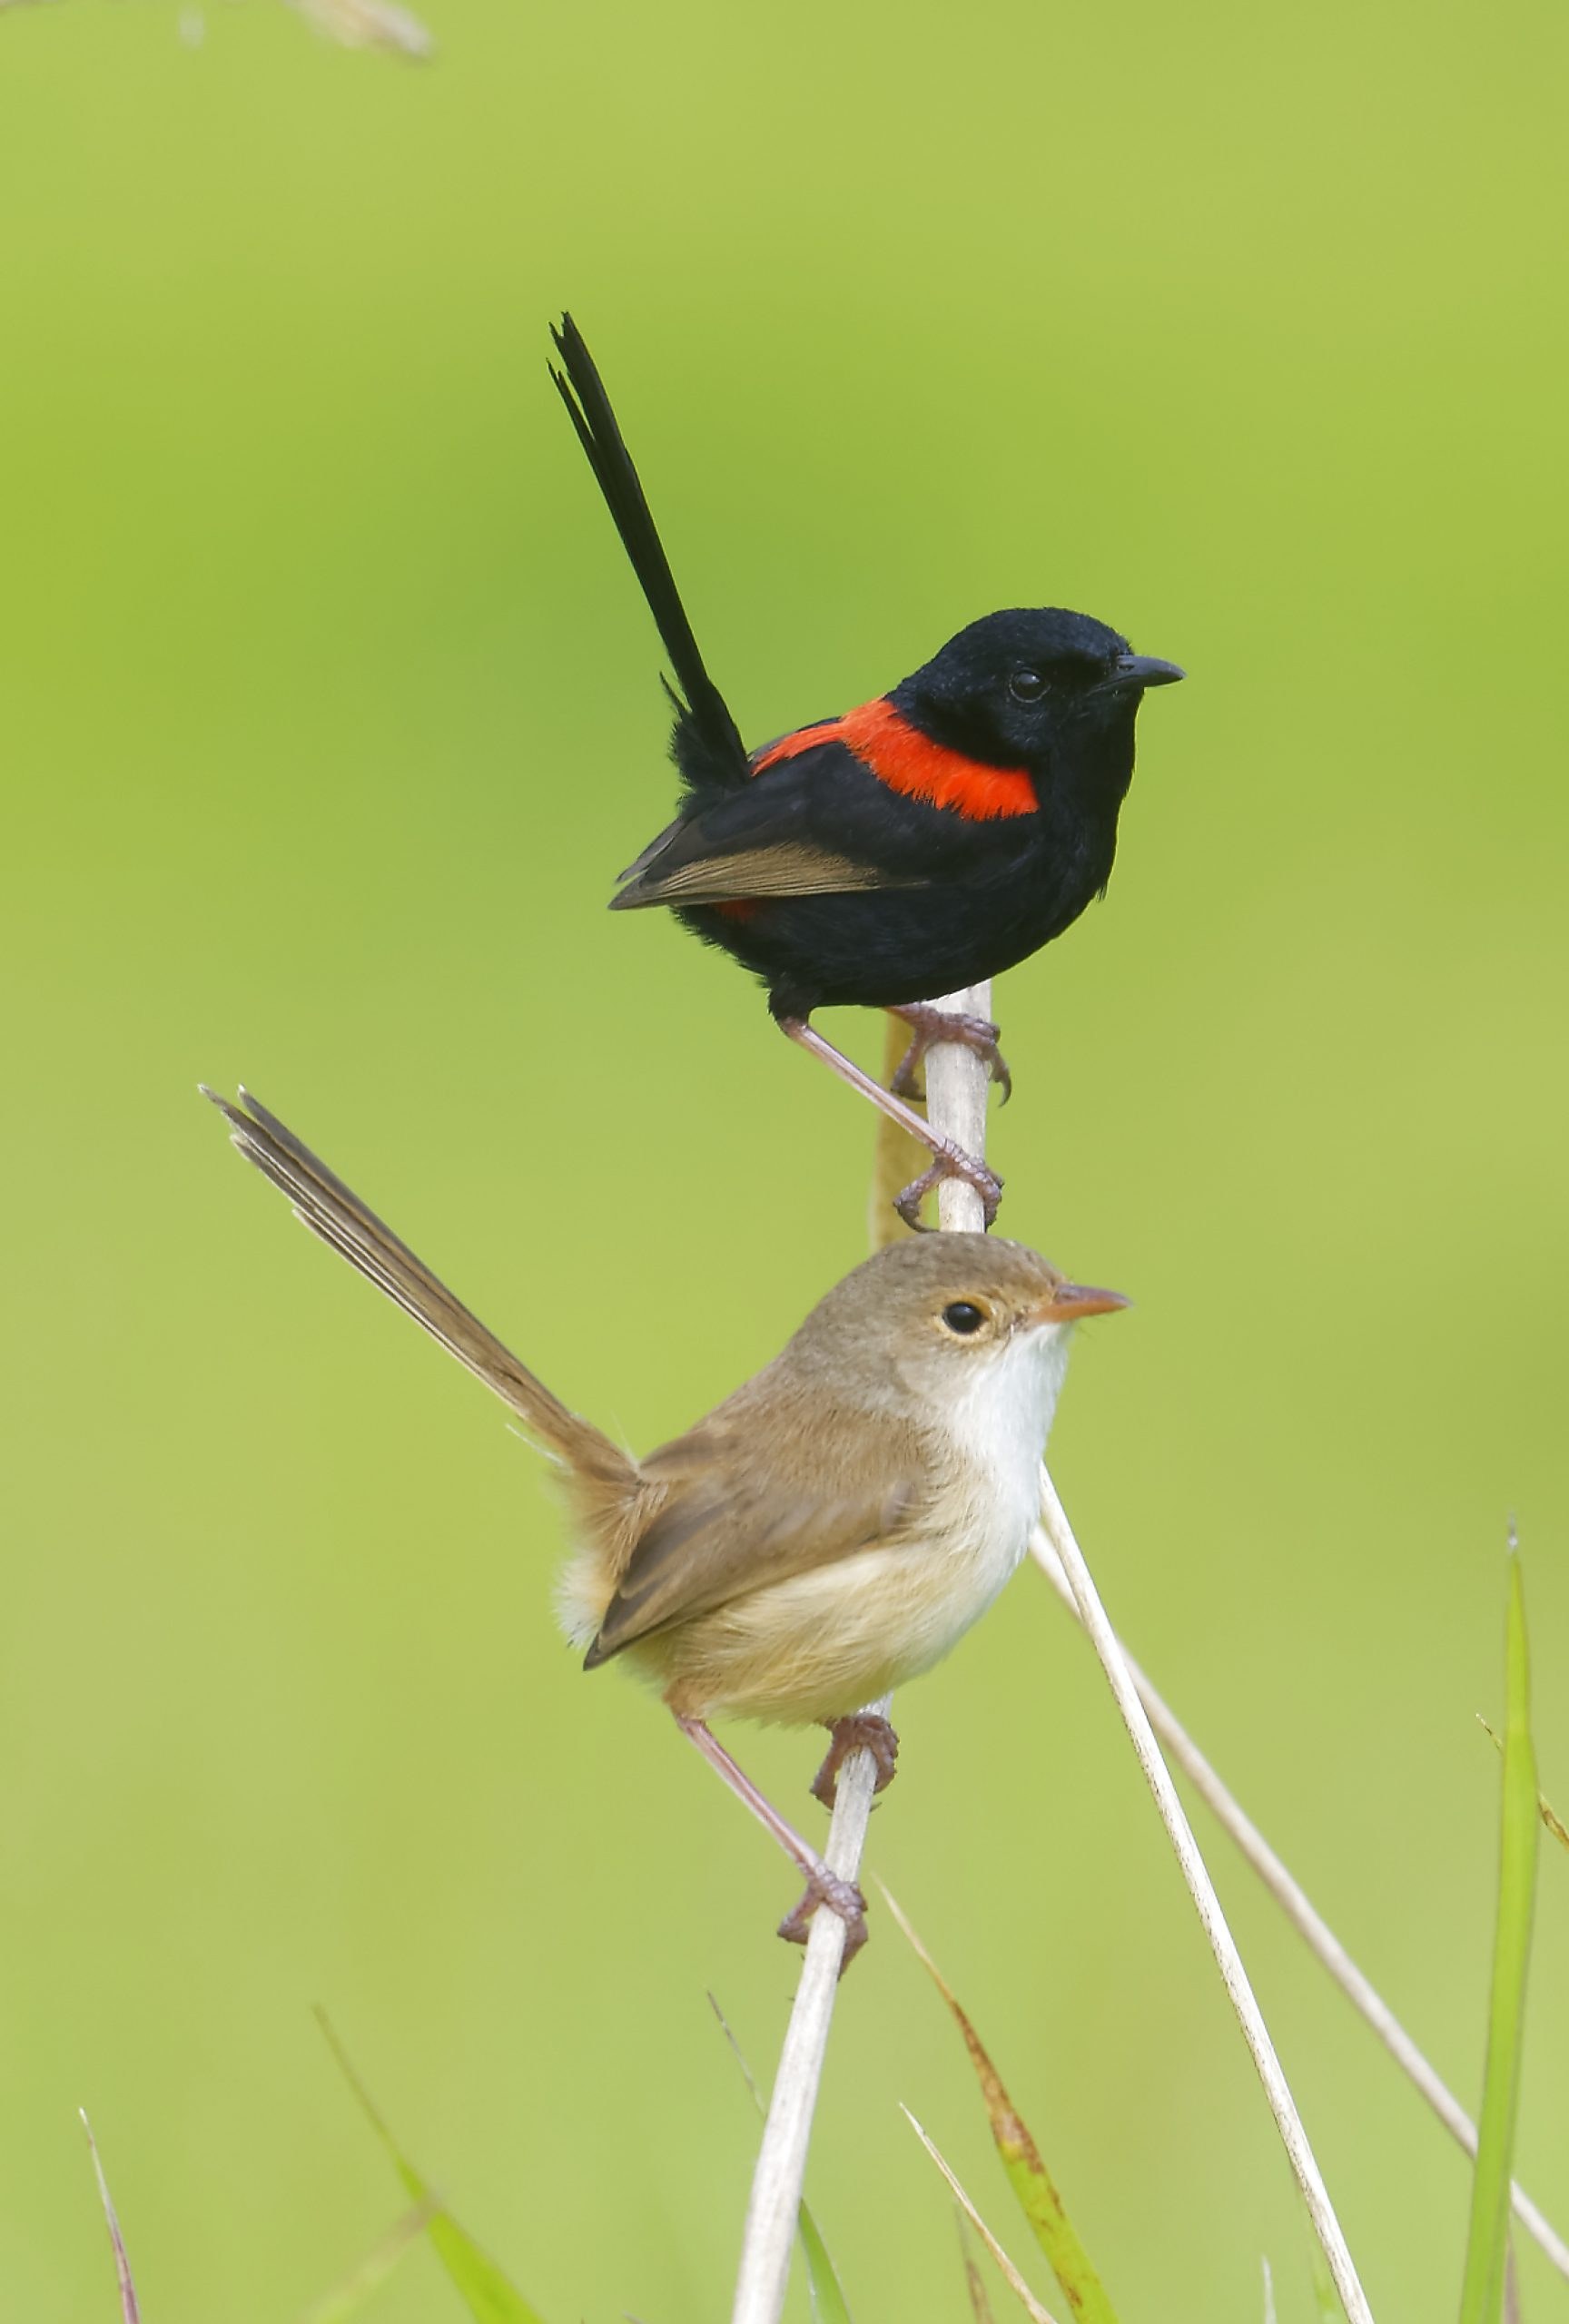 Red-backed Fairywrens